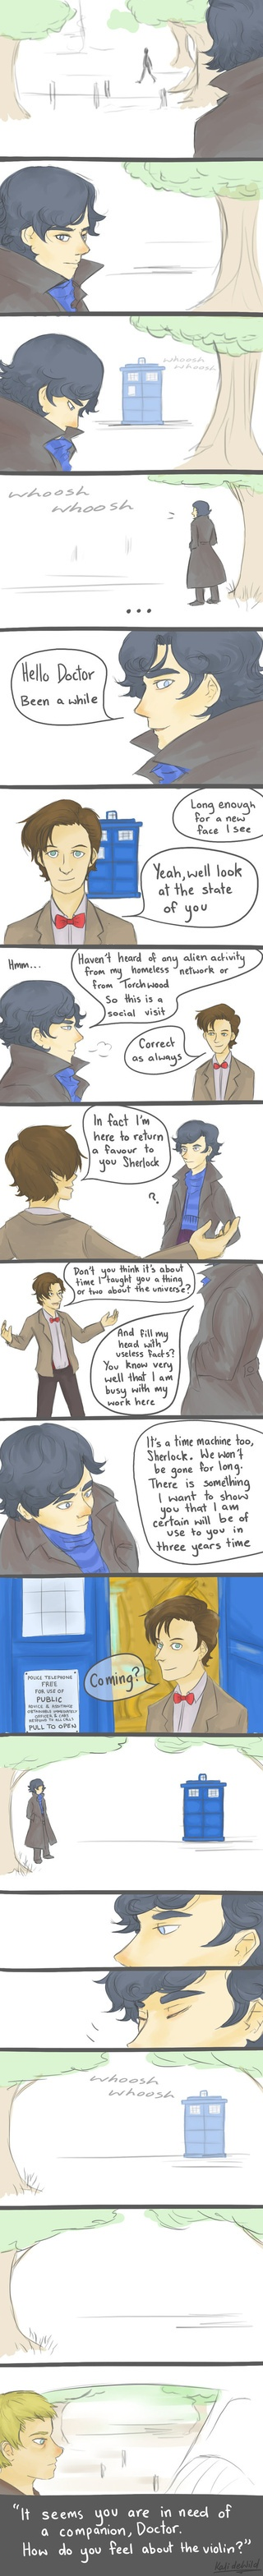 These fan-made Wholock things are awesome! Makes me wish that this would actually happen.